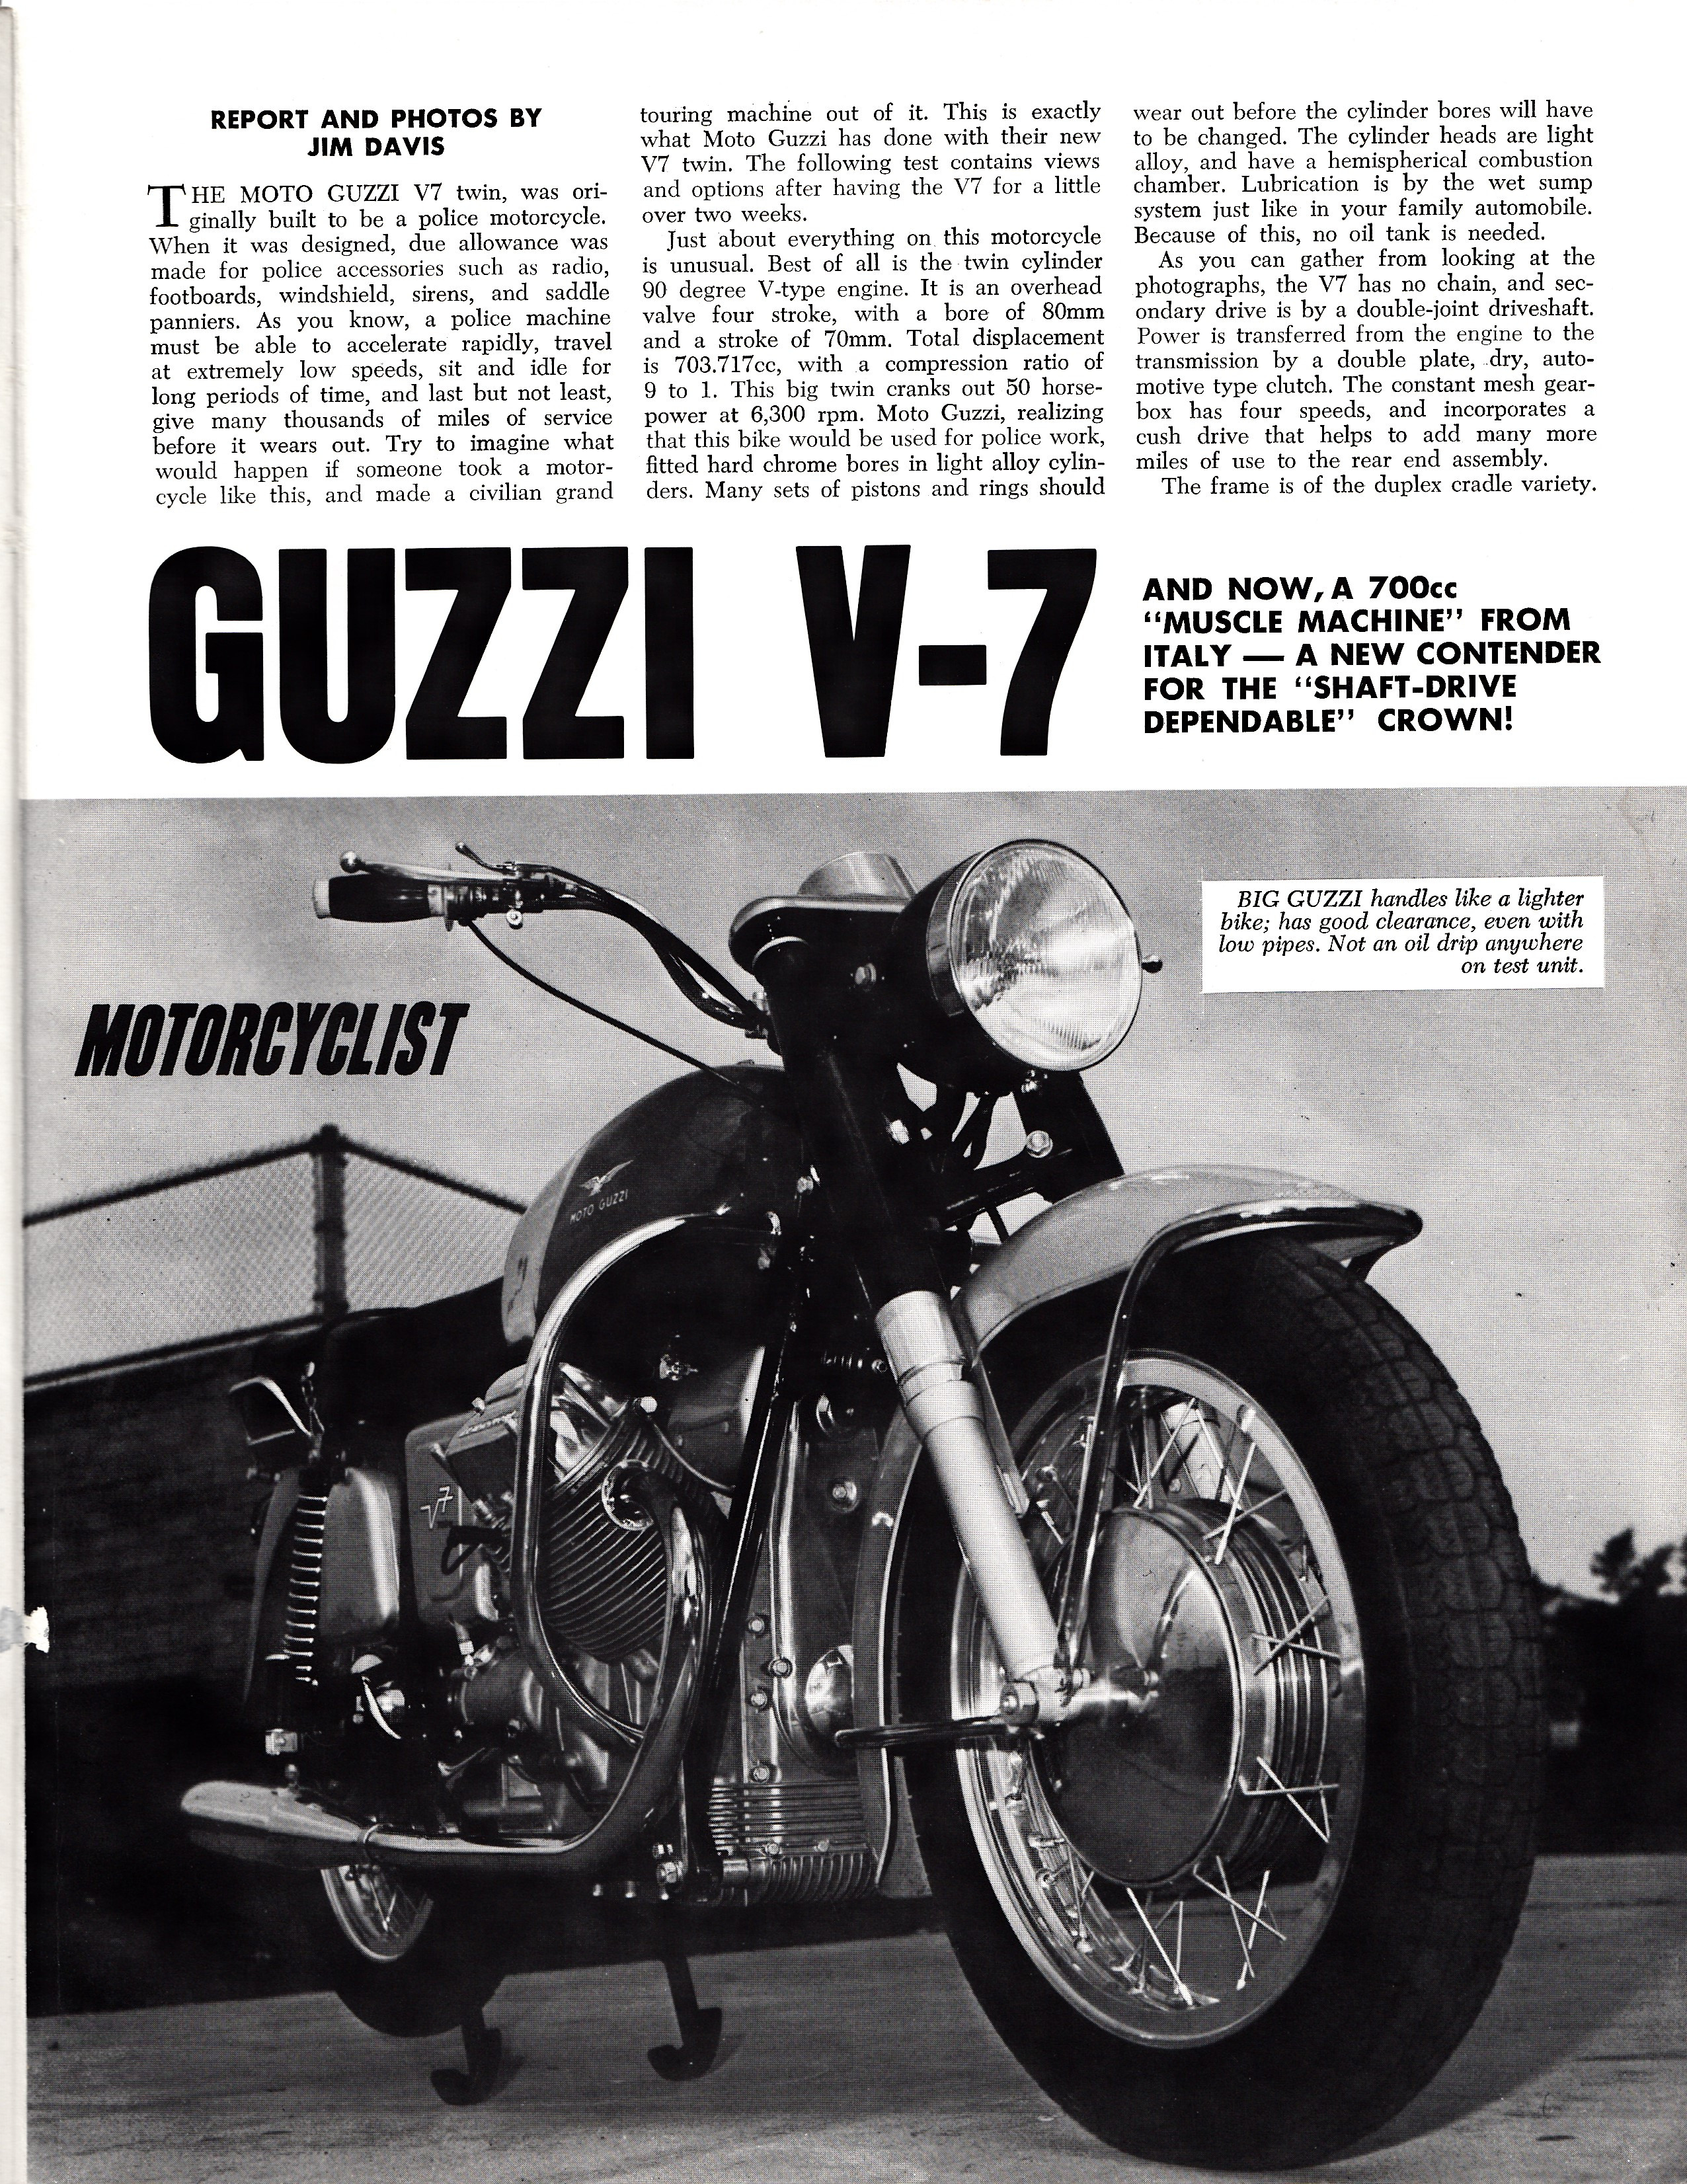 Moto Guzzi V700 factory brochure of magazine reviews, Page 5 of 8.